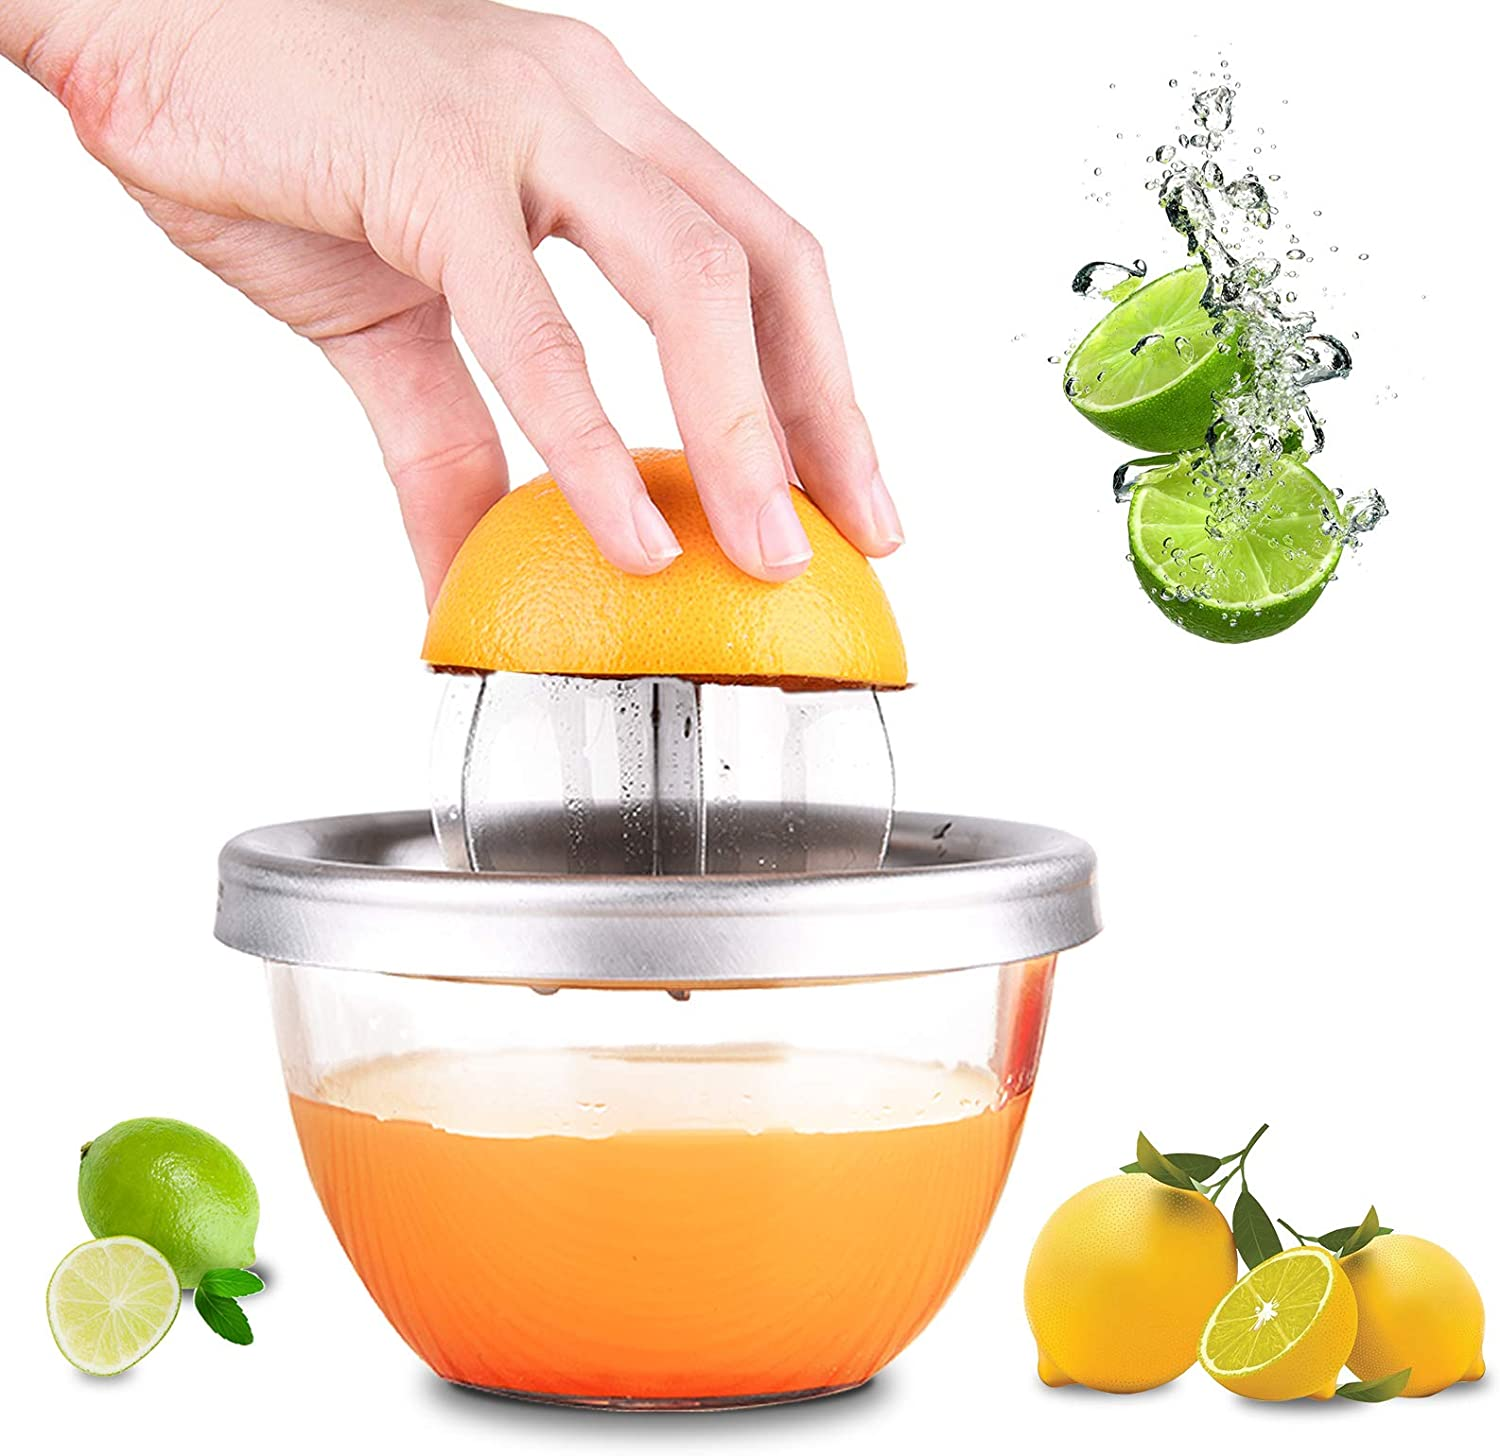 Citrus Lemon Orange Squeezer,OCOOKO 304 Stainless Steel Manual Fruit Juicer with 280ml Bowl Container for Oranges Lemons Fruit Home Made Juice in Kitchen